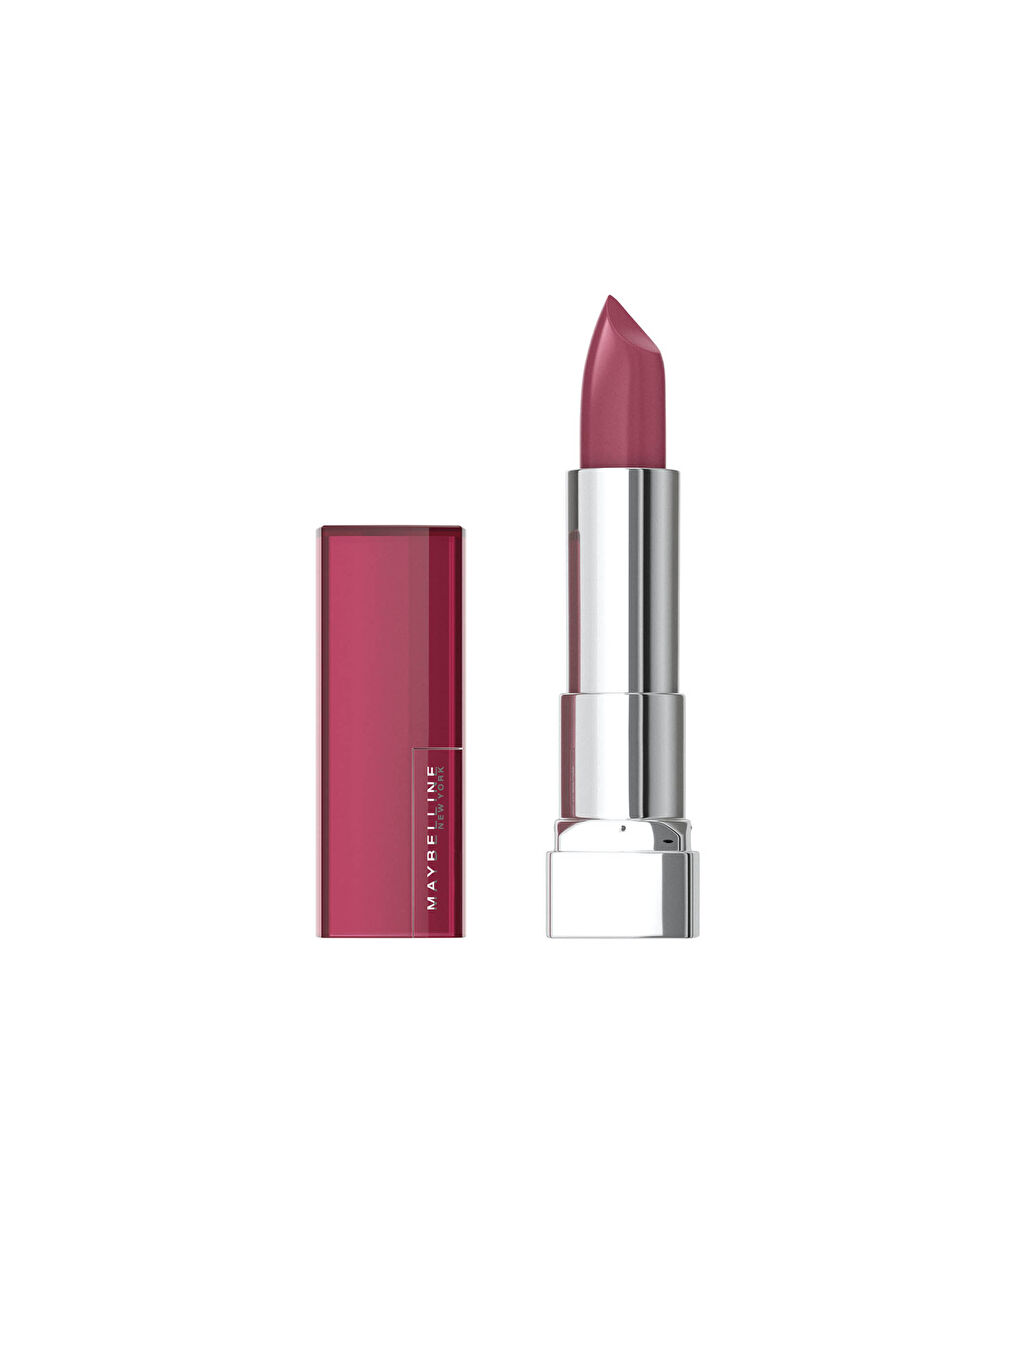 Kozmetik Maybelline New York Color Sensational Ruj - 200 Rose Embrace - Gül Kurusu